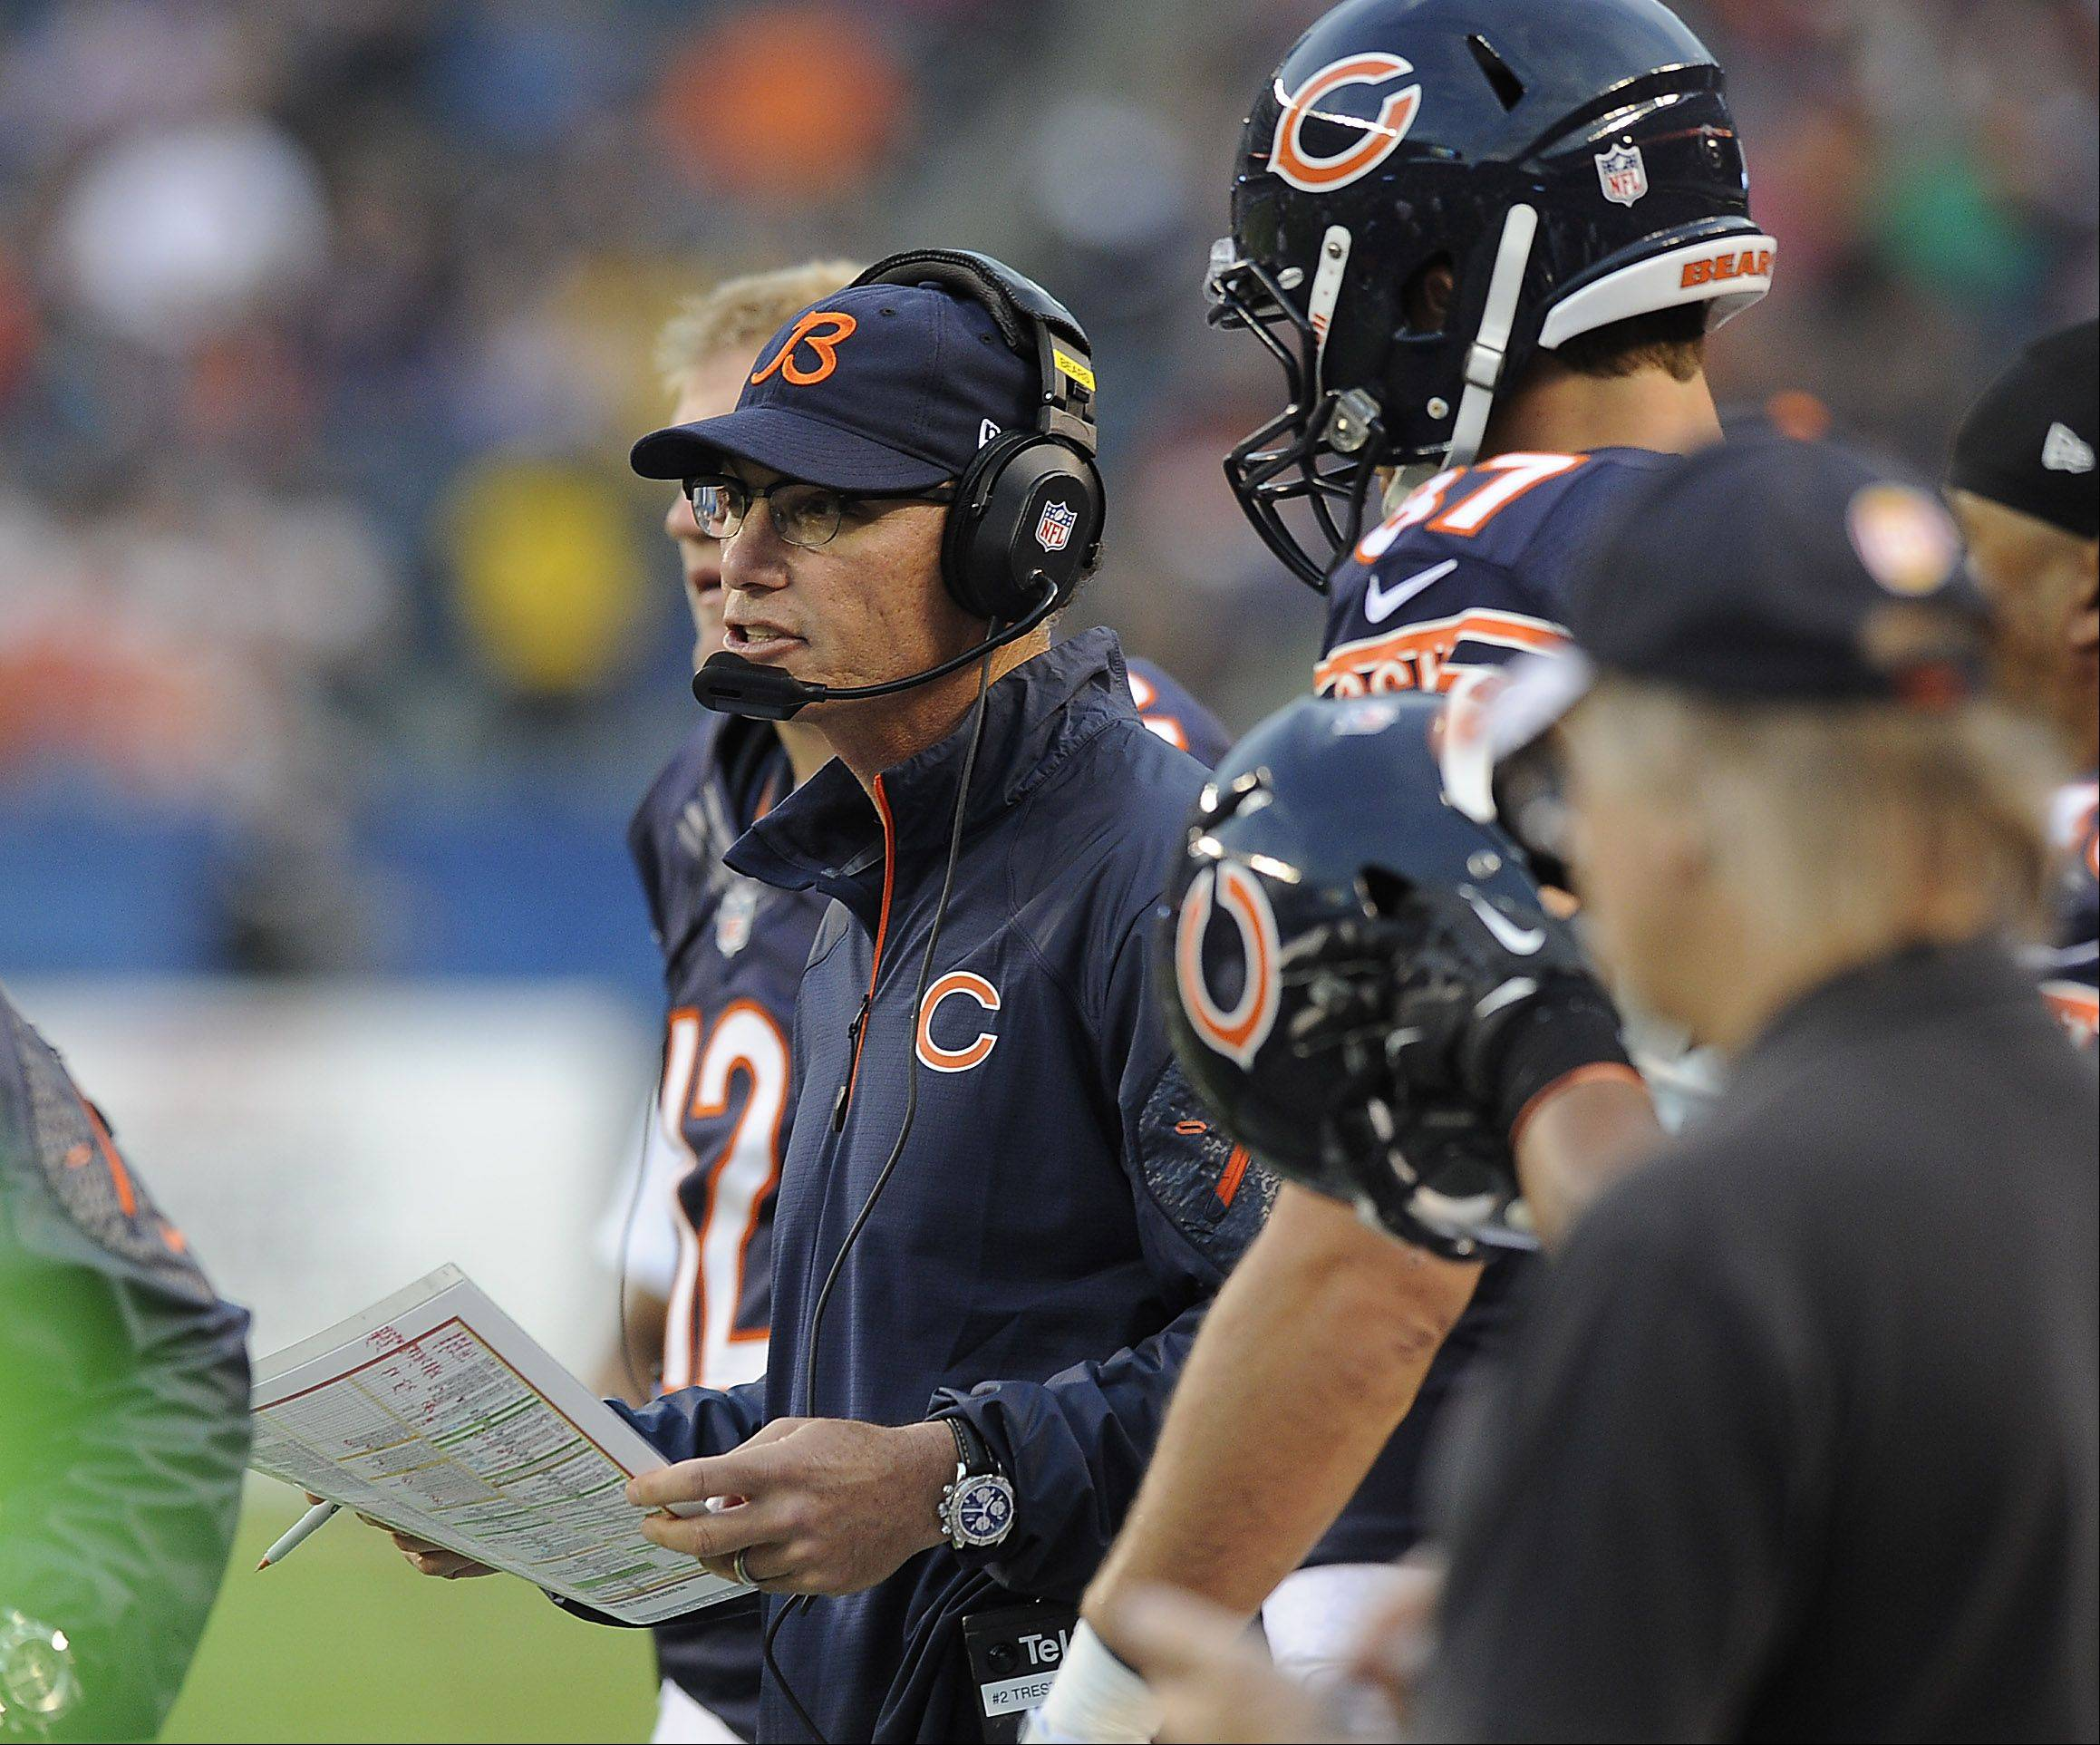 Bears' Trestman just focused on doing his job